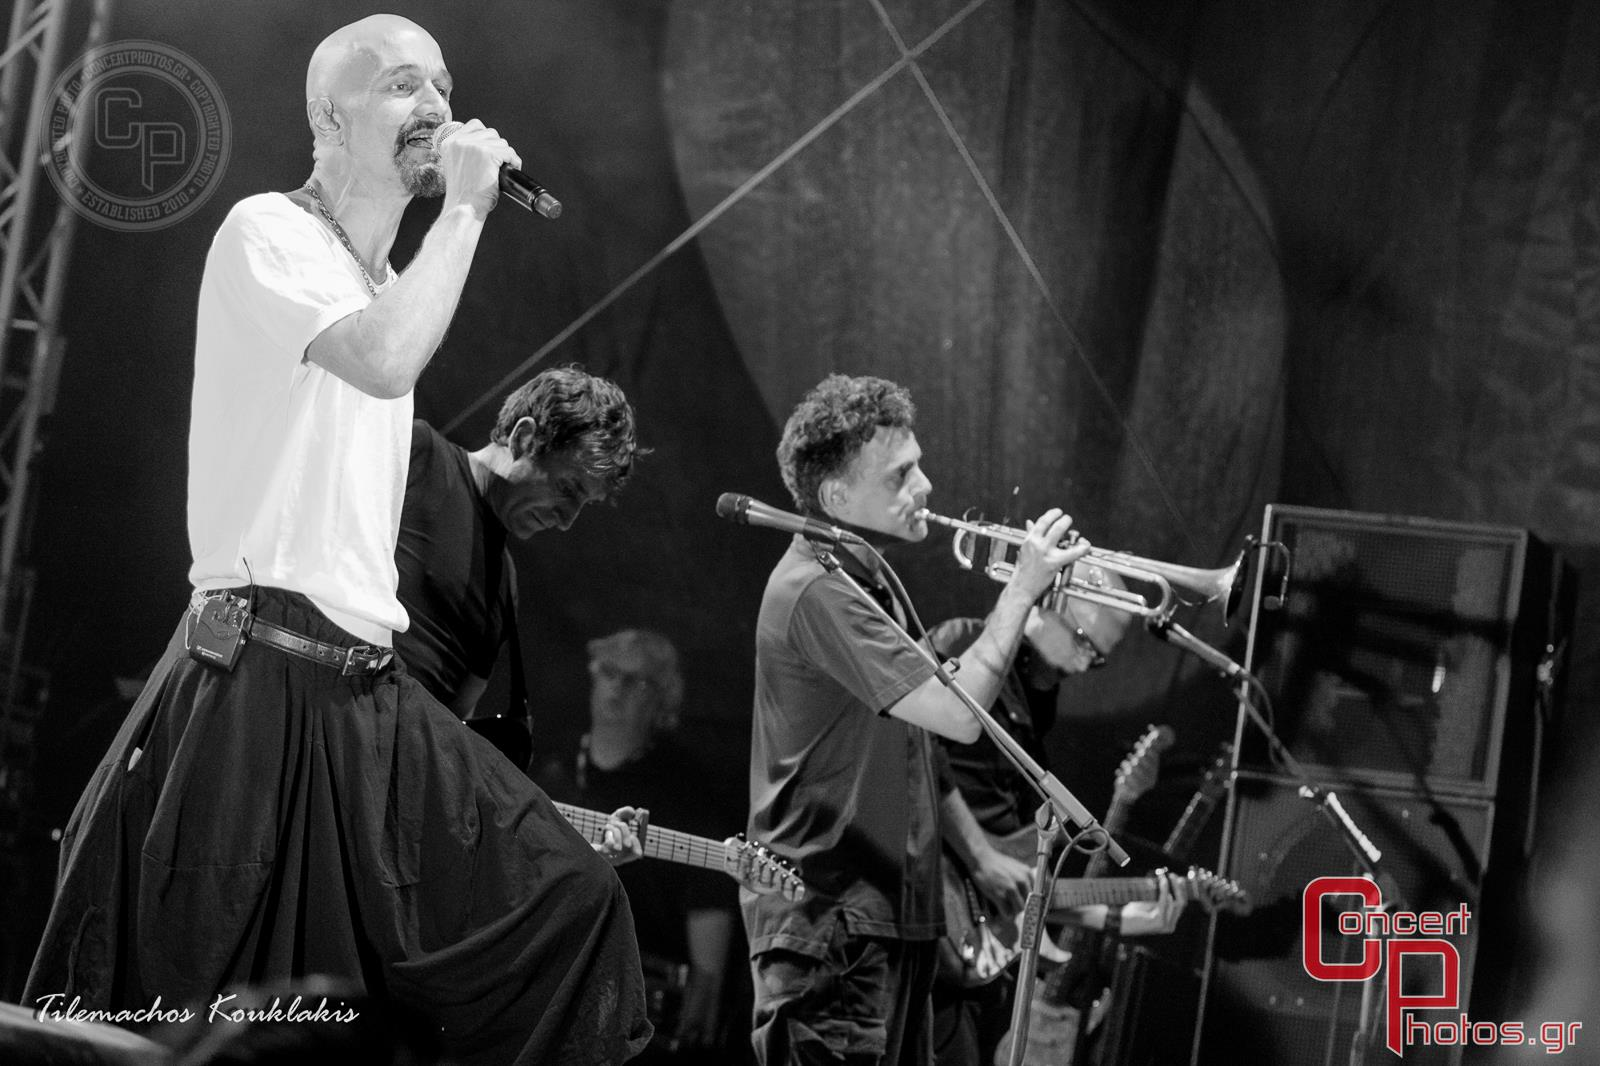 James & Moan-James-Theatro Vrachon photographer:  - Rockwave-2014-20